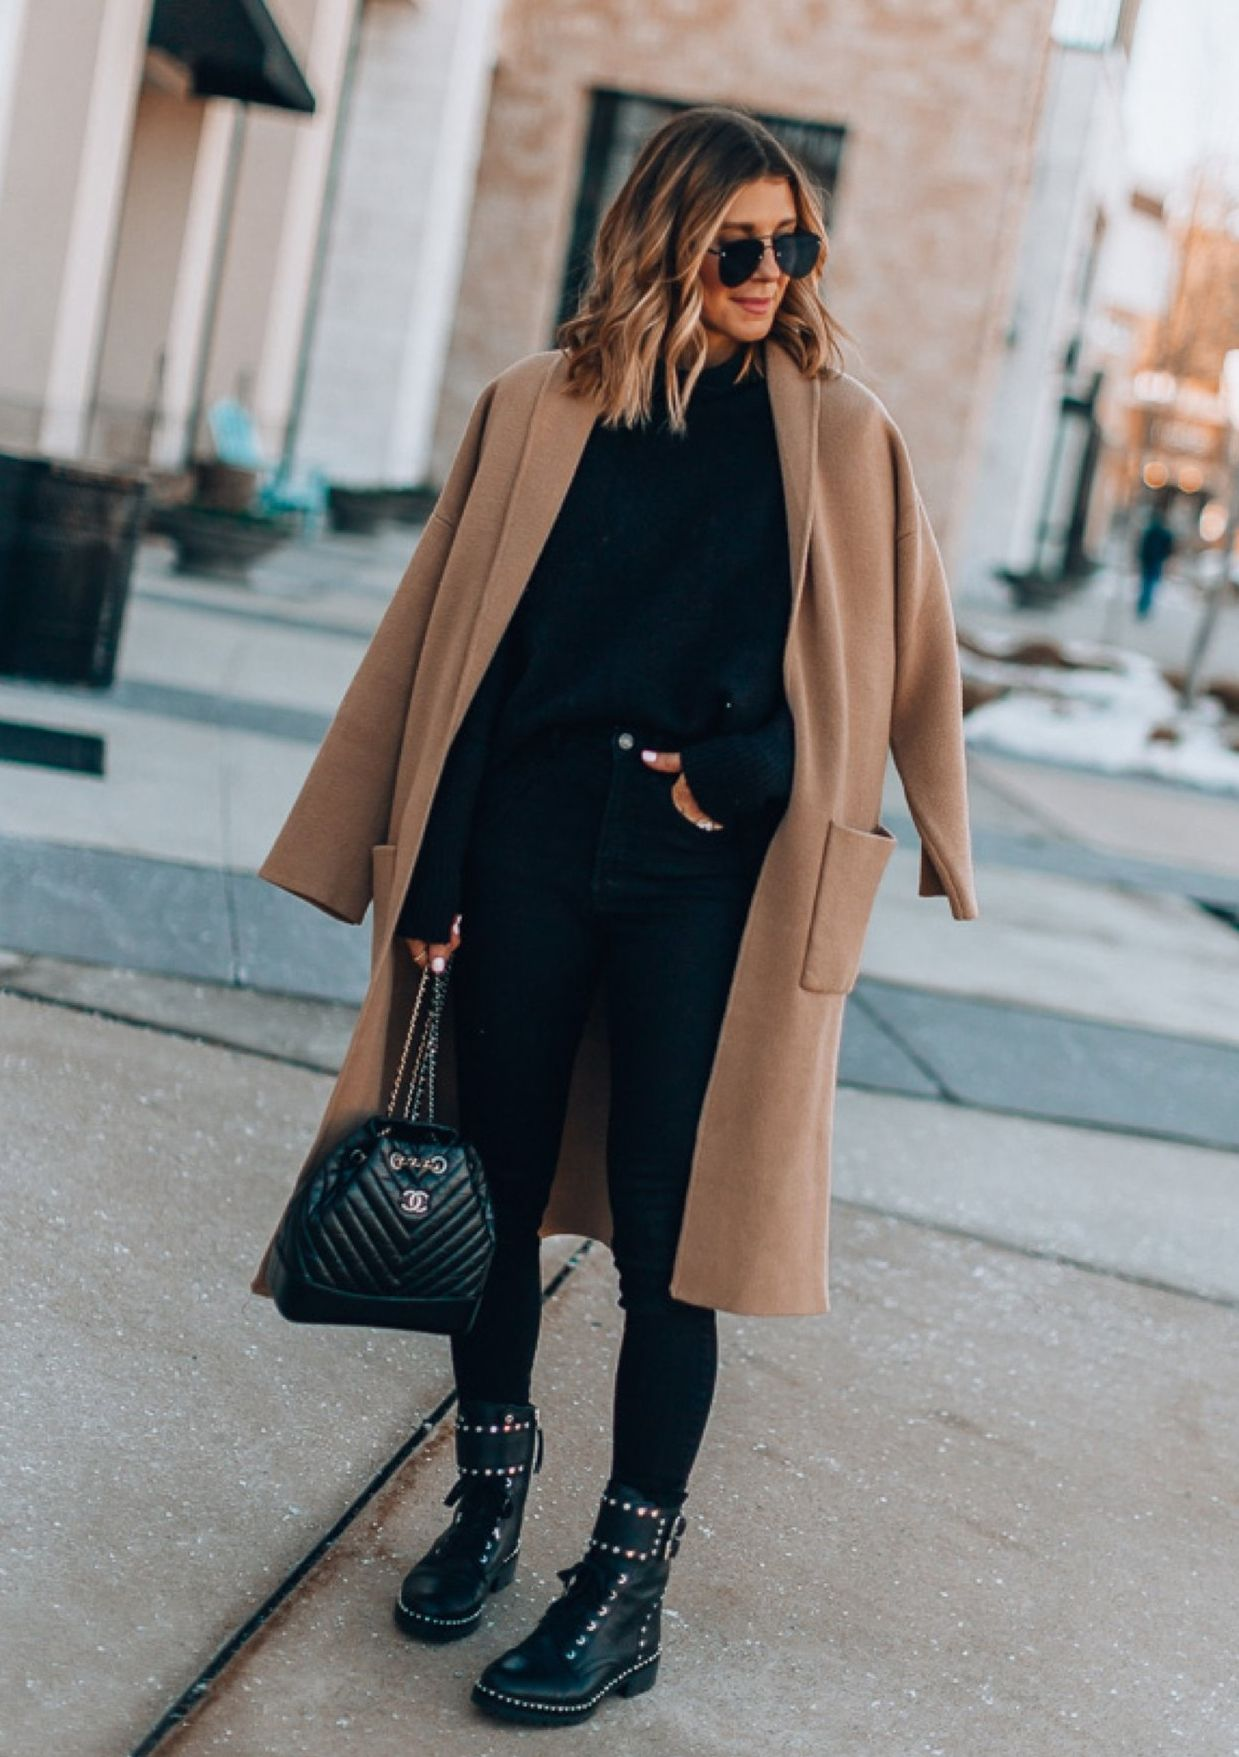 30+ Stunning Black Leggings Outfits For Winter You Need To Try ASAP